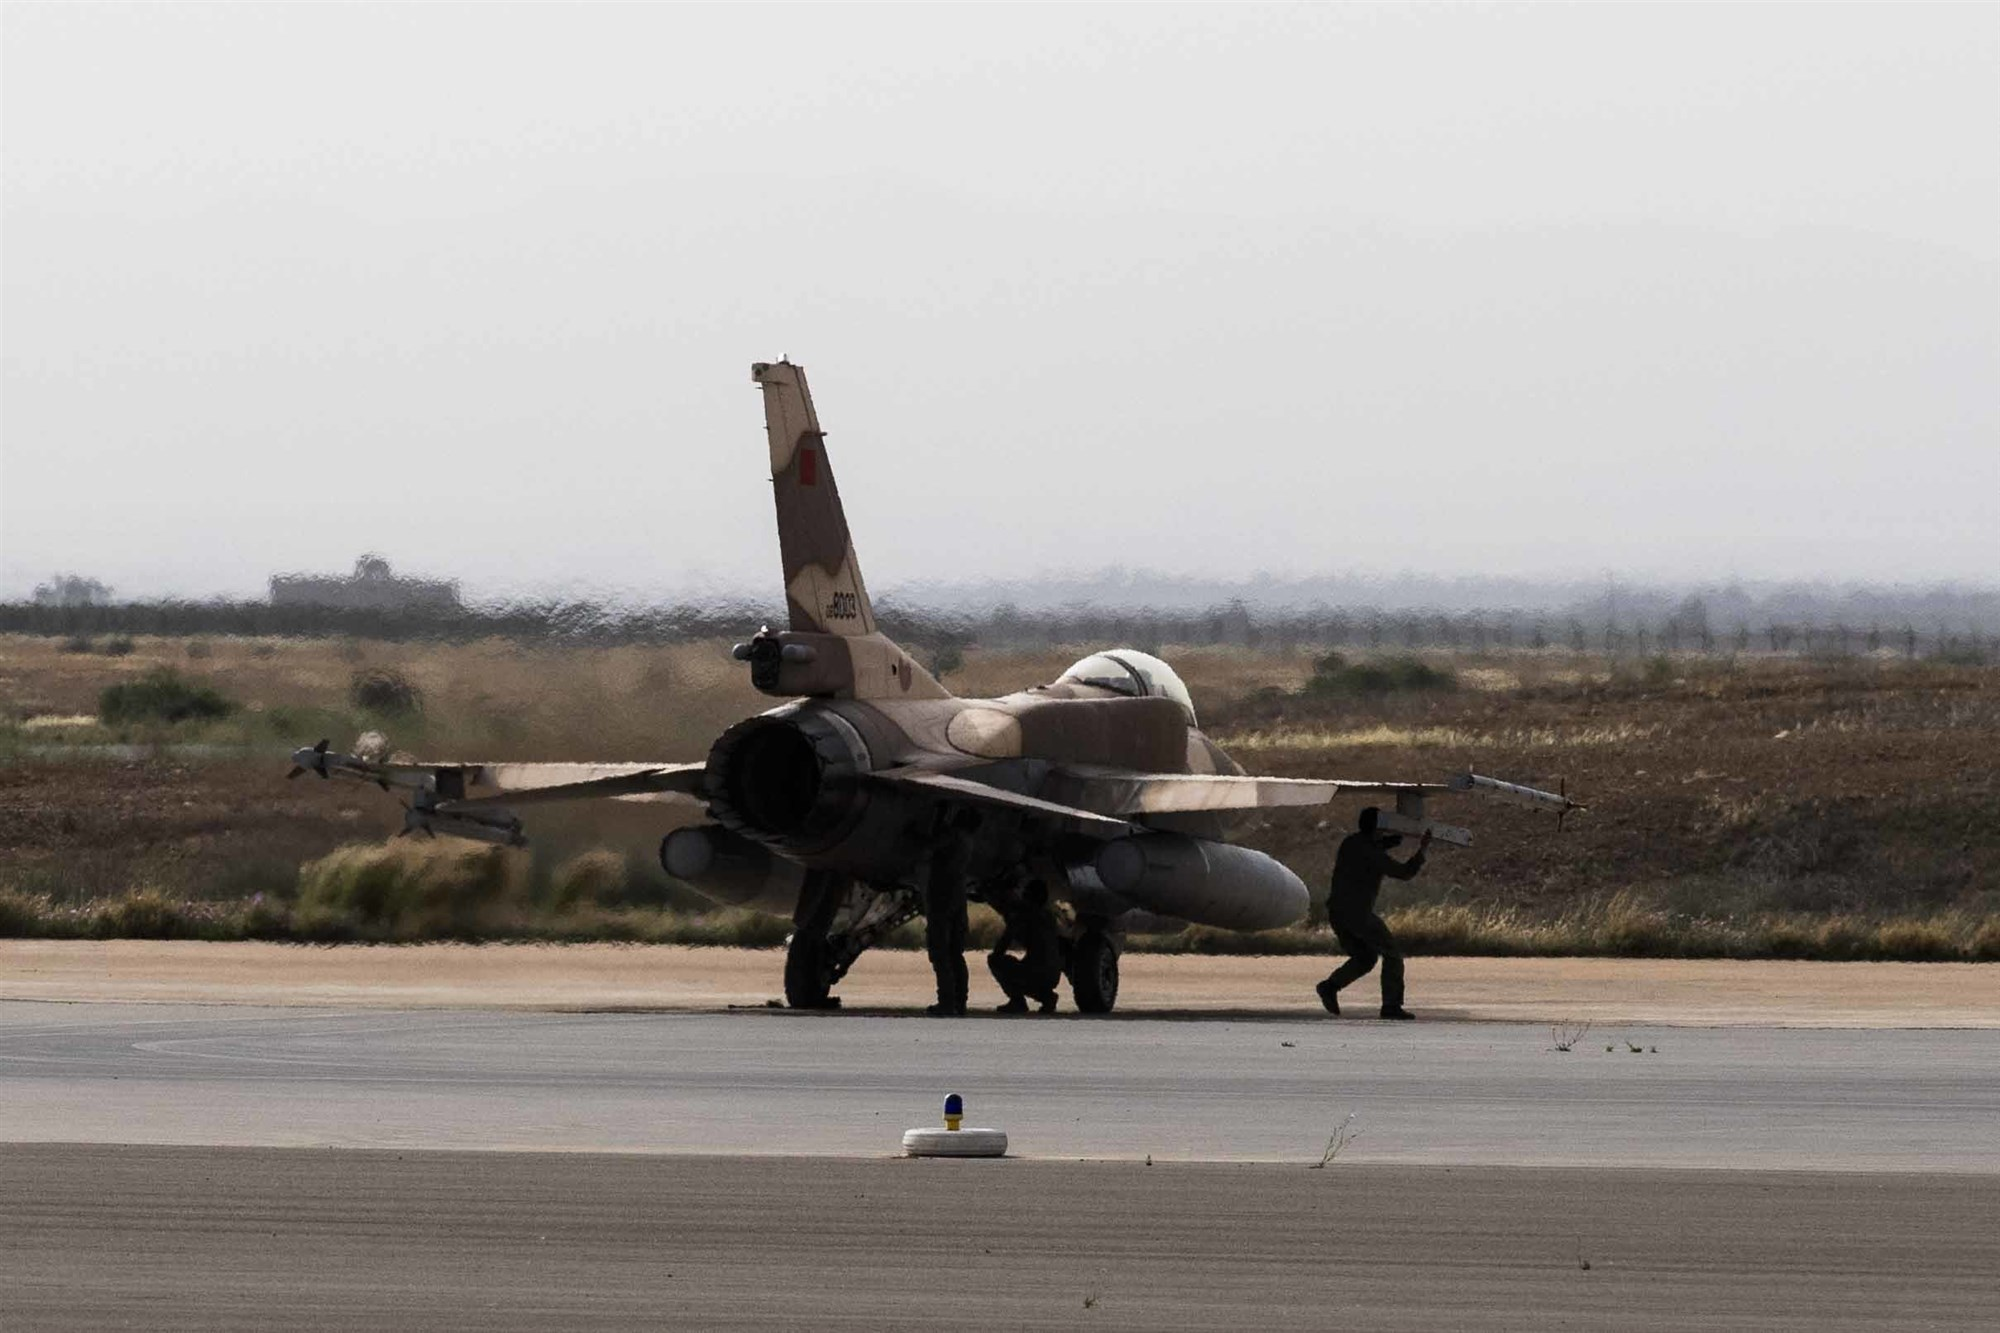 Royal Moroccan Air Force maintainers check a Moroccan F-16 prior to takeoff during exercise African Lion 2019 at Ben Guerir Air Base, Morocco, March 25, 2019. The exercise took place in the Kingdom of Morocco, a strong U.S. partner in counterterrorism efforts and a pivotal player in the issues confronting the broader Middle East and North Africa region. African Lion 2019 is a Chairman of the Joint Chiefs of Staff-sponsored, U.S. Africa Command-scheduled, U.S. Marine Corps Forces Europe and Africa-led, joint and combined exercise conducted in the Kingdom of Morocco with a spoke in Tunisia, and armed forces participants in from Canada, France, Senegal, Spain, and the United Kingdom. (U.S. Air Force photo by Staff Sgt. Ceaira Tinsley)